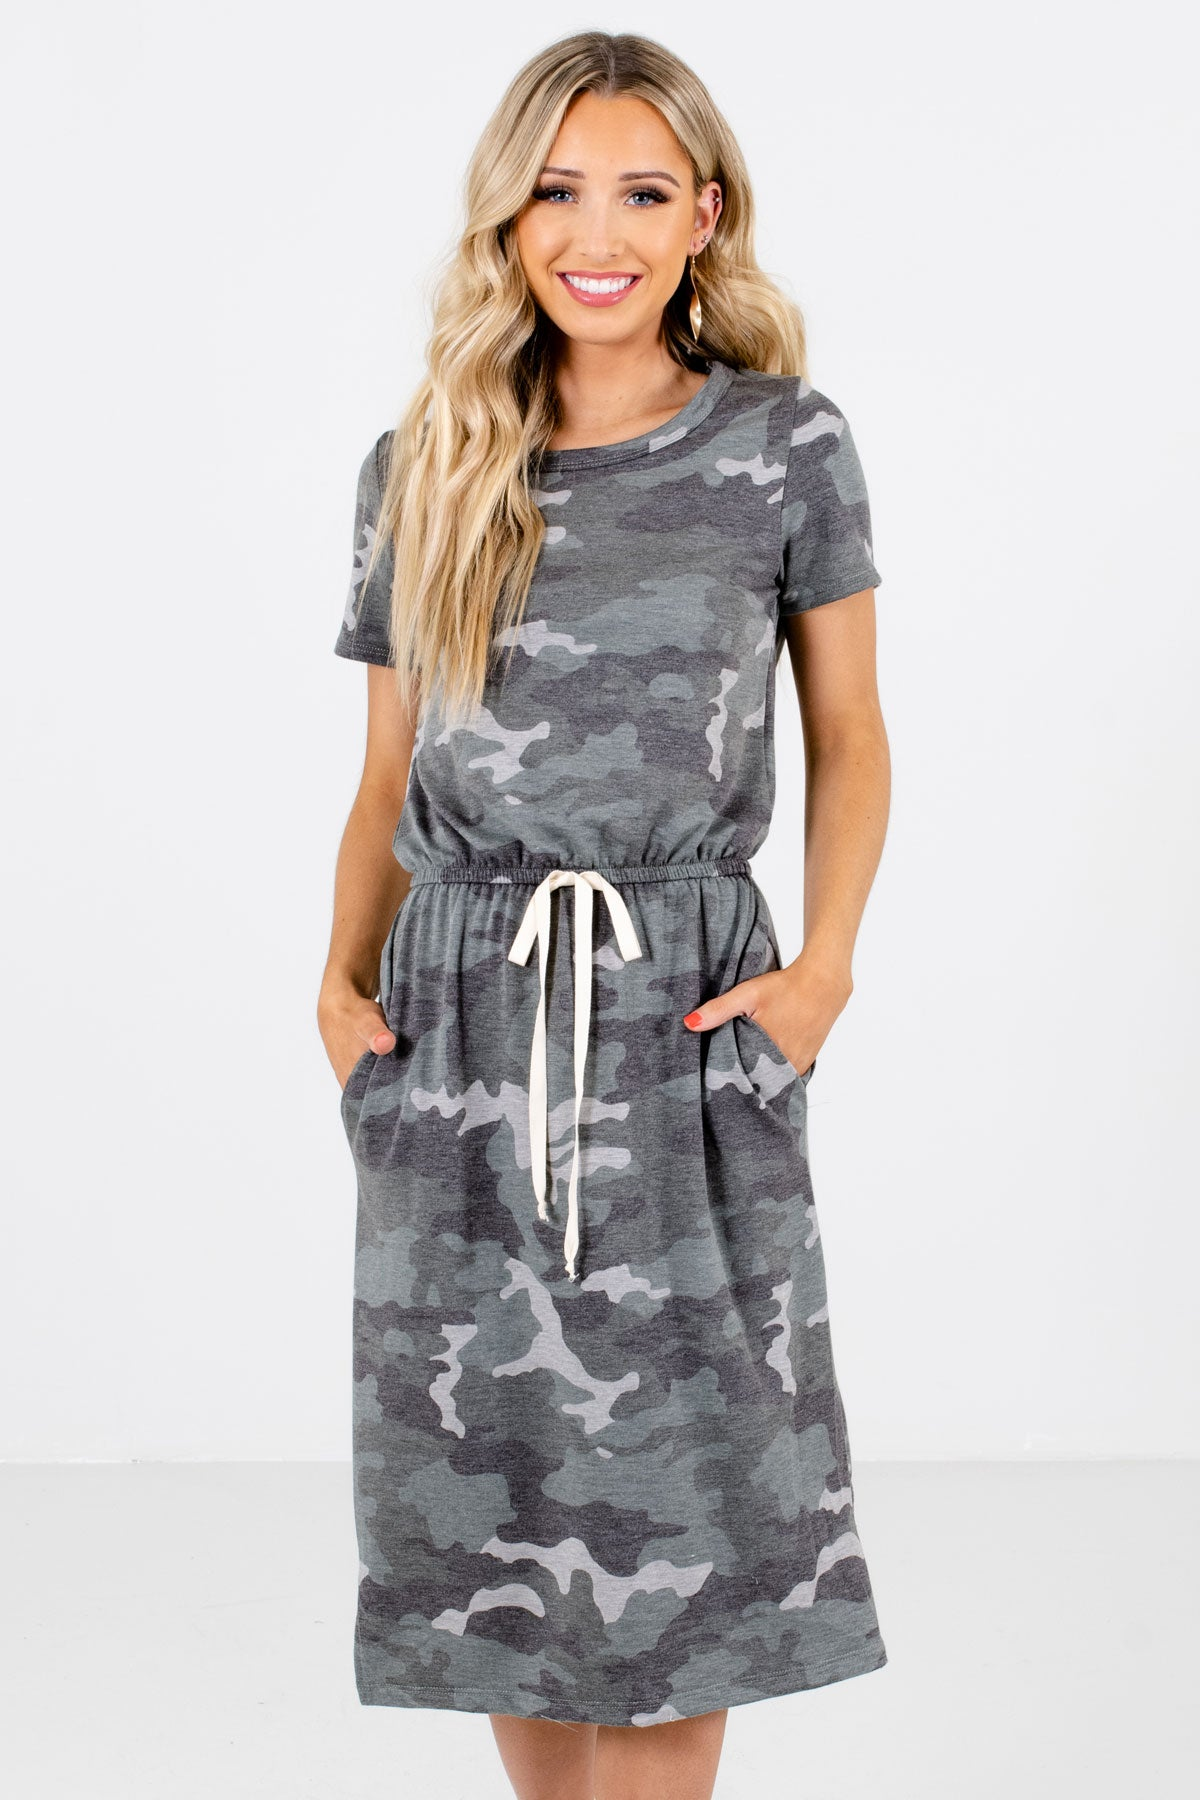 Green Camo Print Boutique Knee-Length Dresses for Women